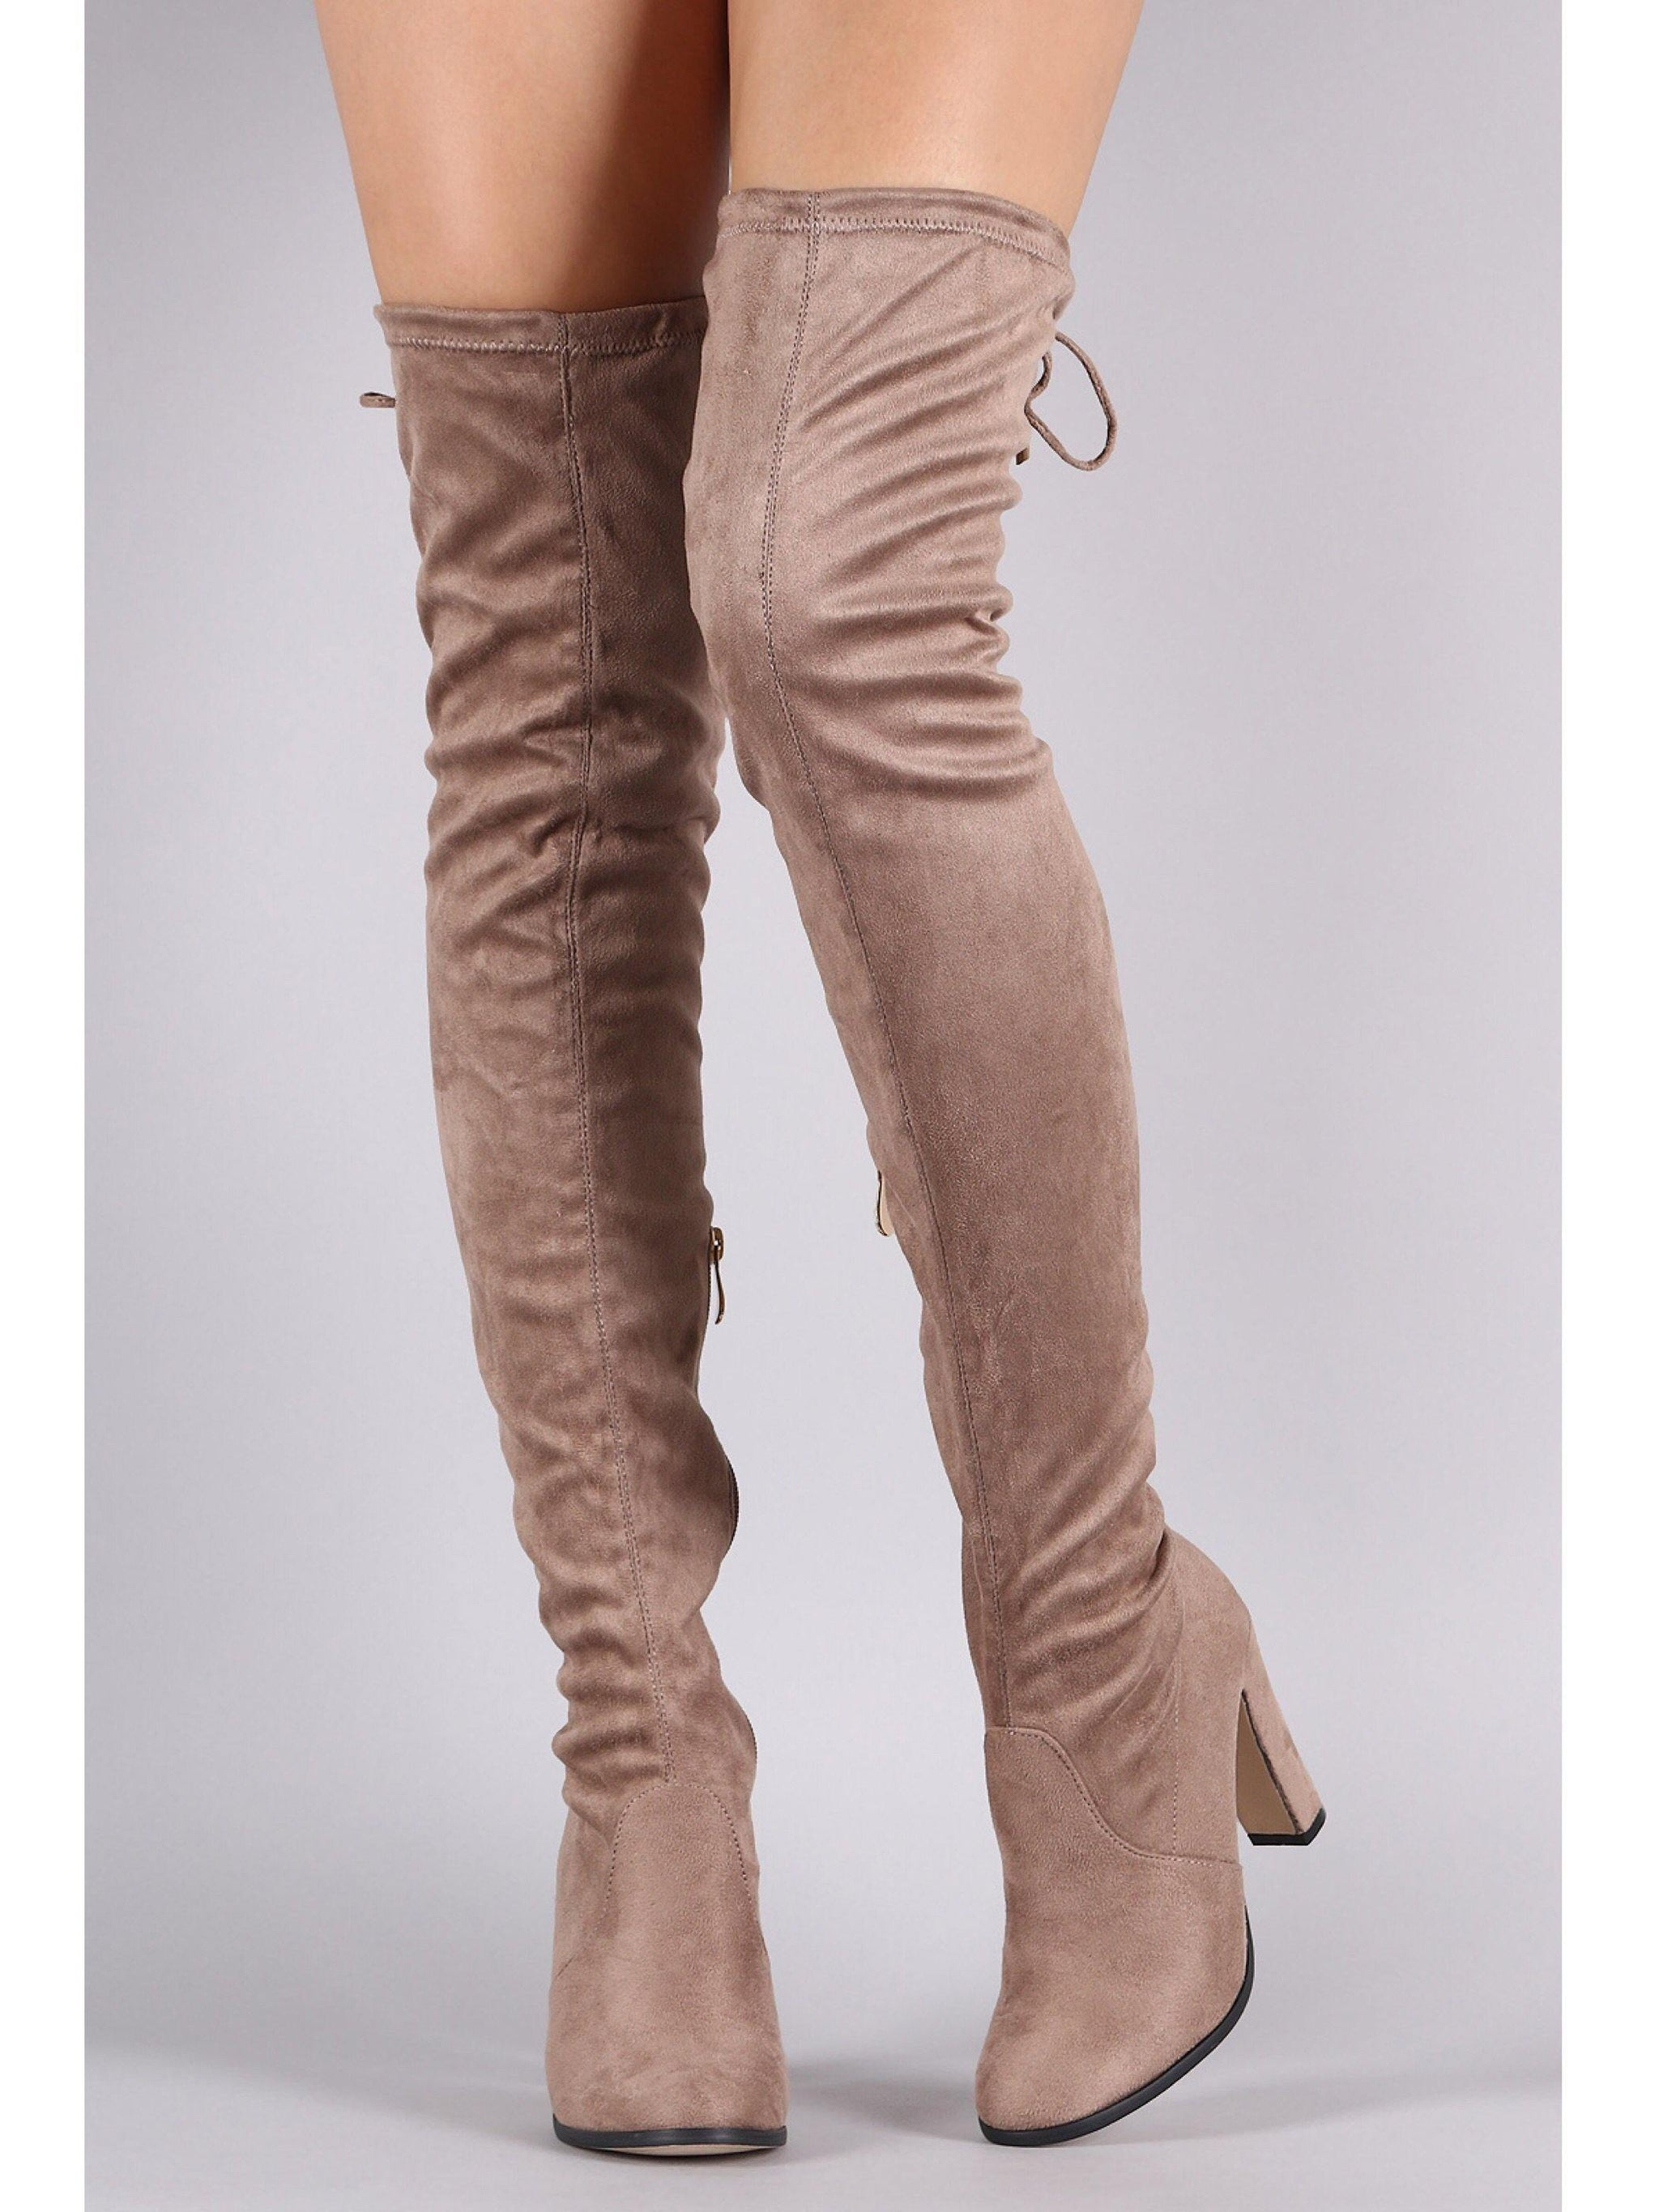 Mona thigh high khaki boots with a chunky heel